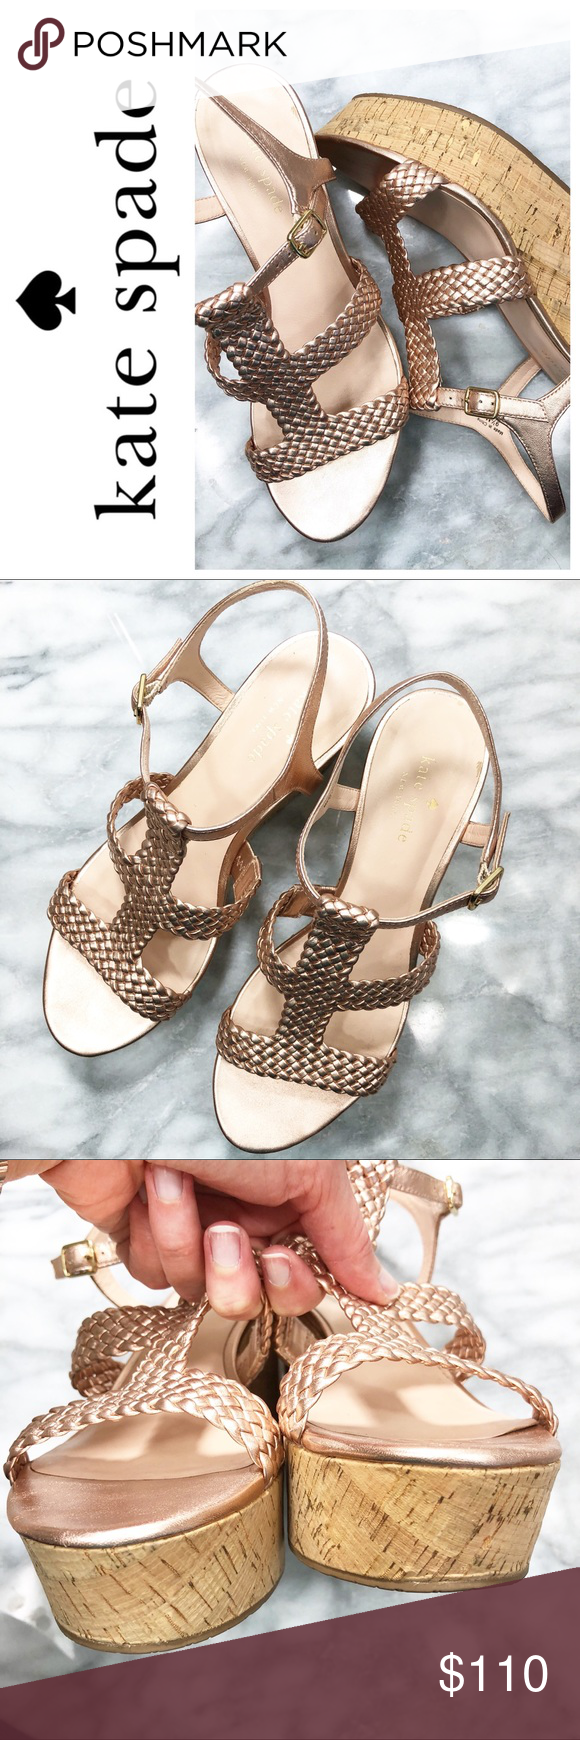 b16823cf179a Kate Spade Tianna Rose Gold platform sandals Excellent pre-owned condition  with box Woven rose gold leather upper Cork sides kate spade Shoes Sandals